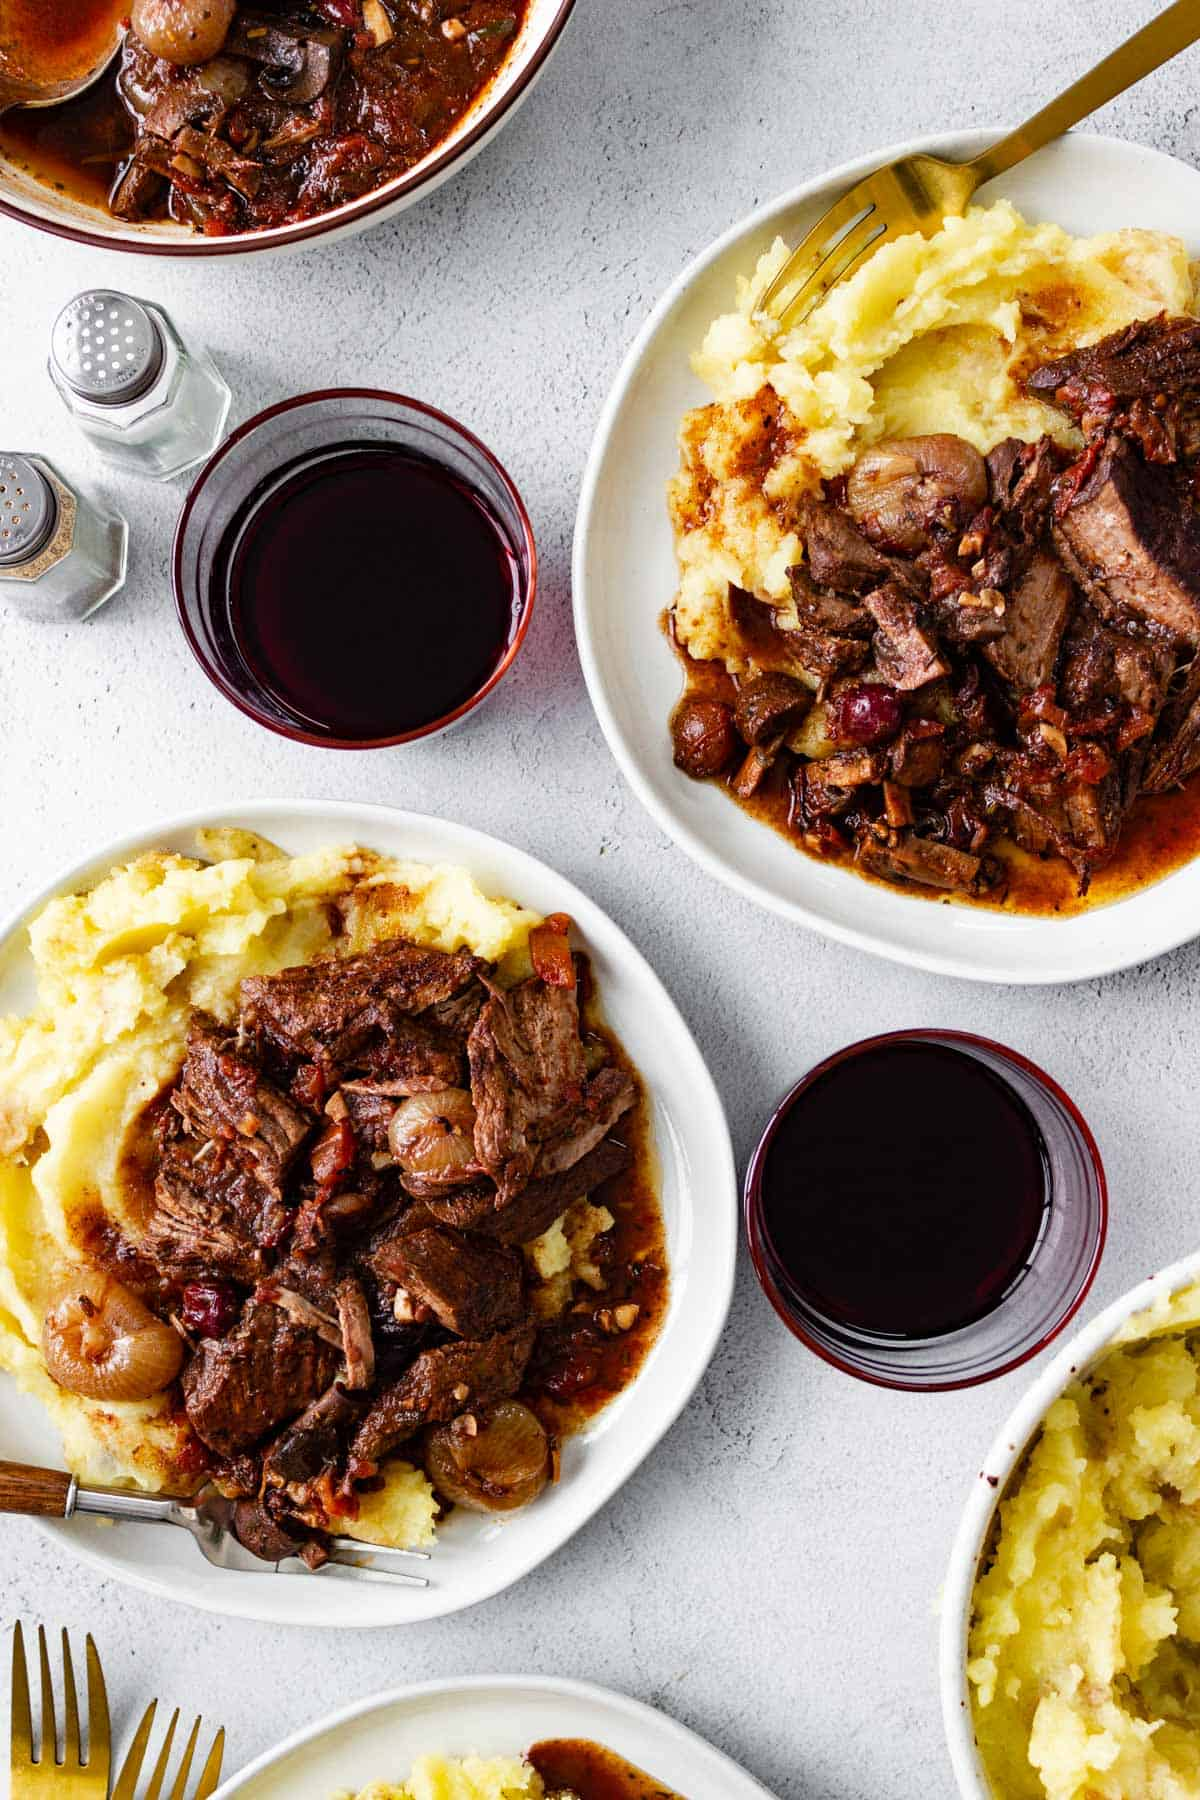 Plates of mashed potatoes topped with tender ribs in pomegranate sauce.